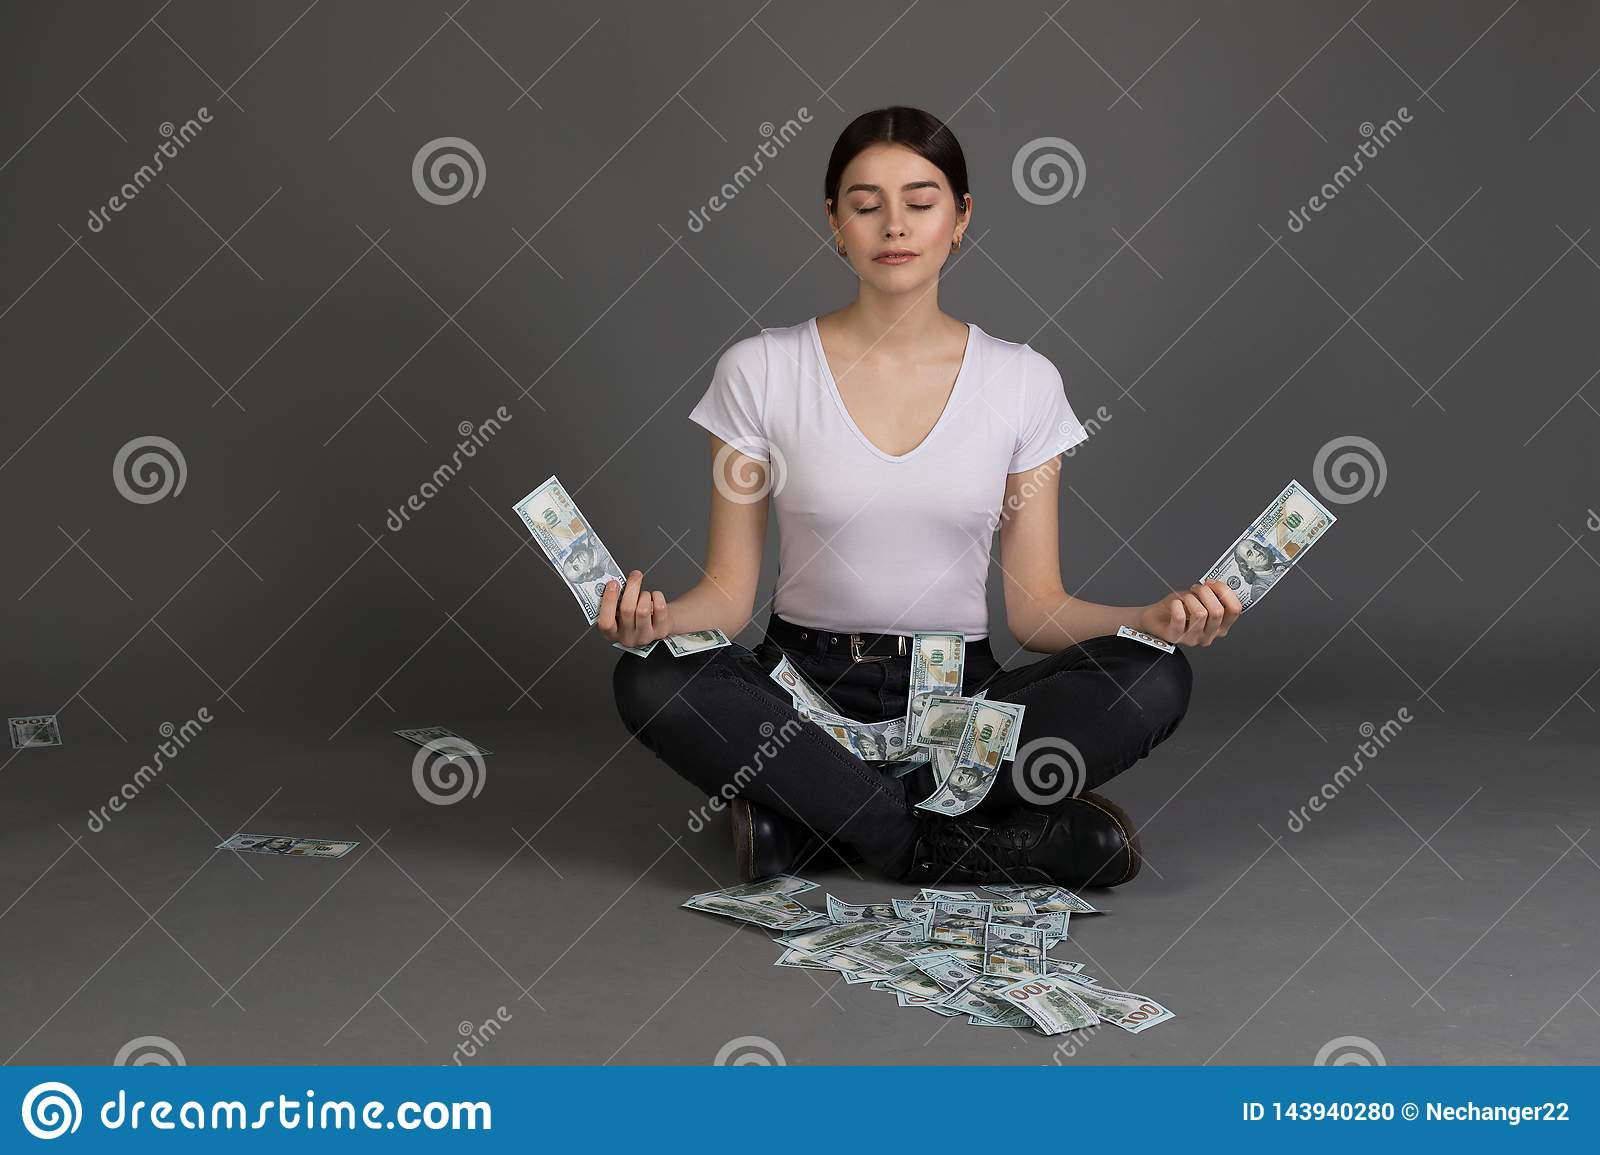 Beautiful girl with brunette hair in white t-shirt meditates with closed eyes while sitting in lotus position